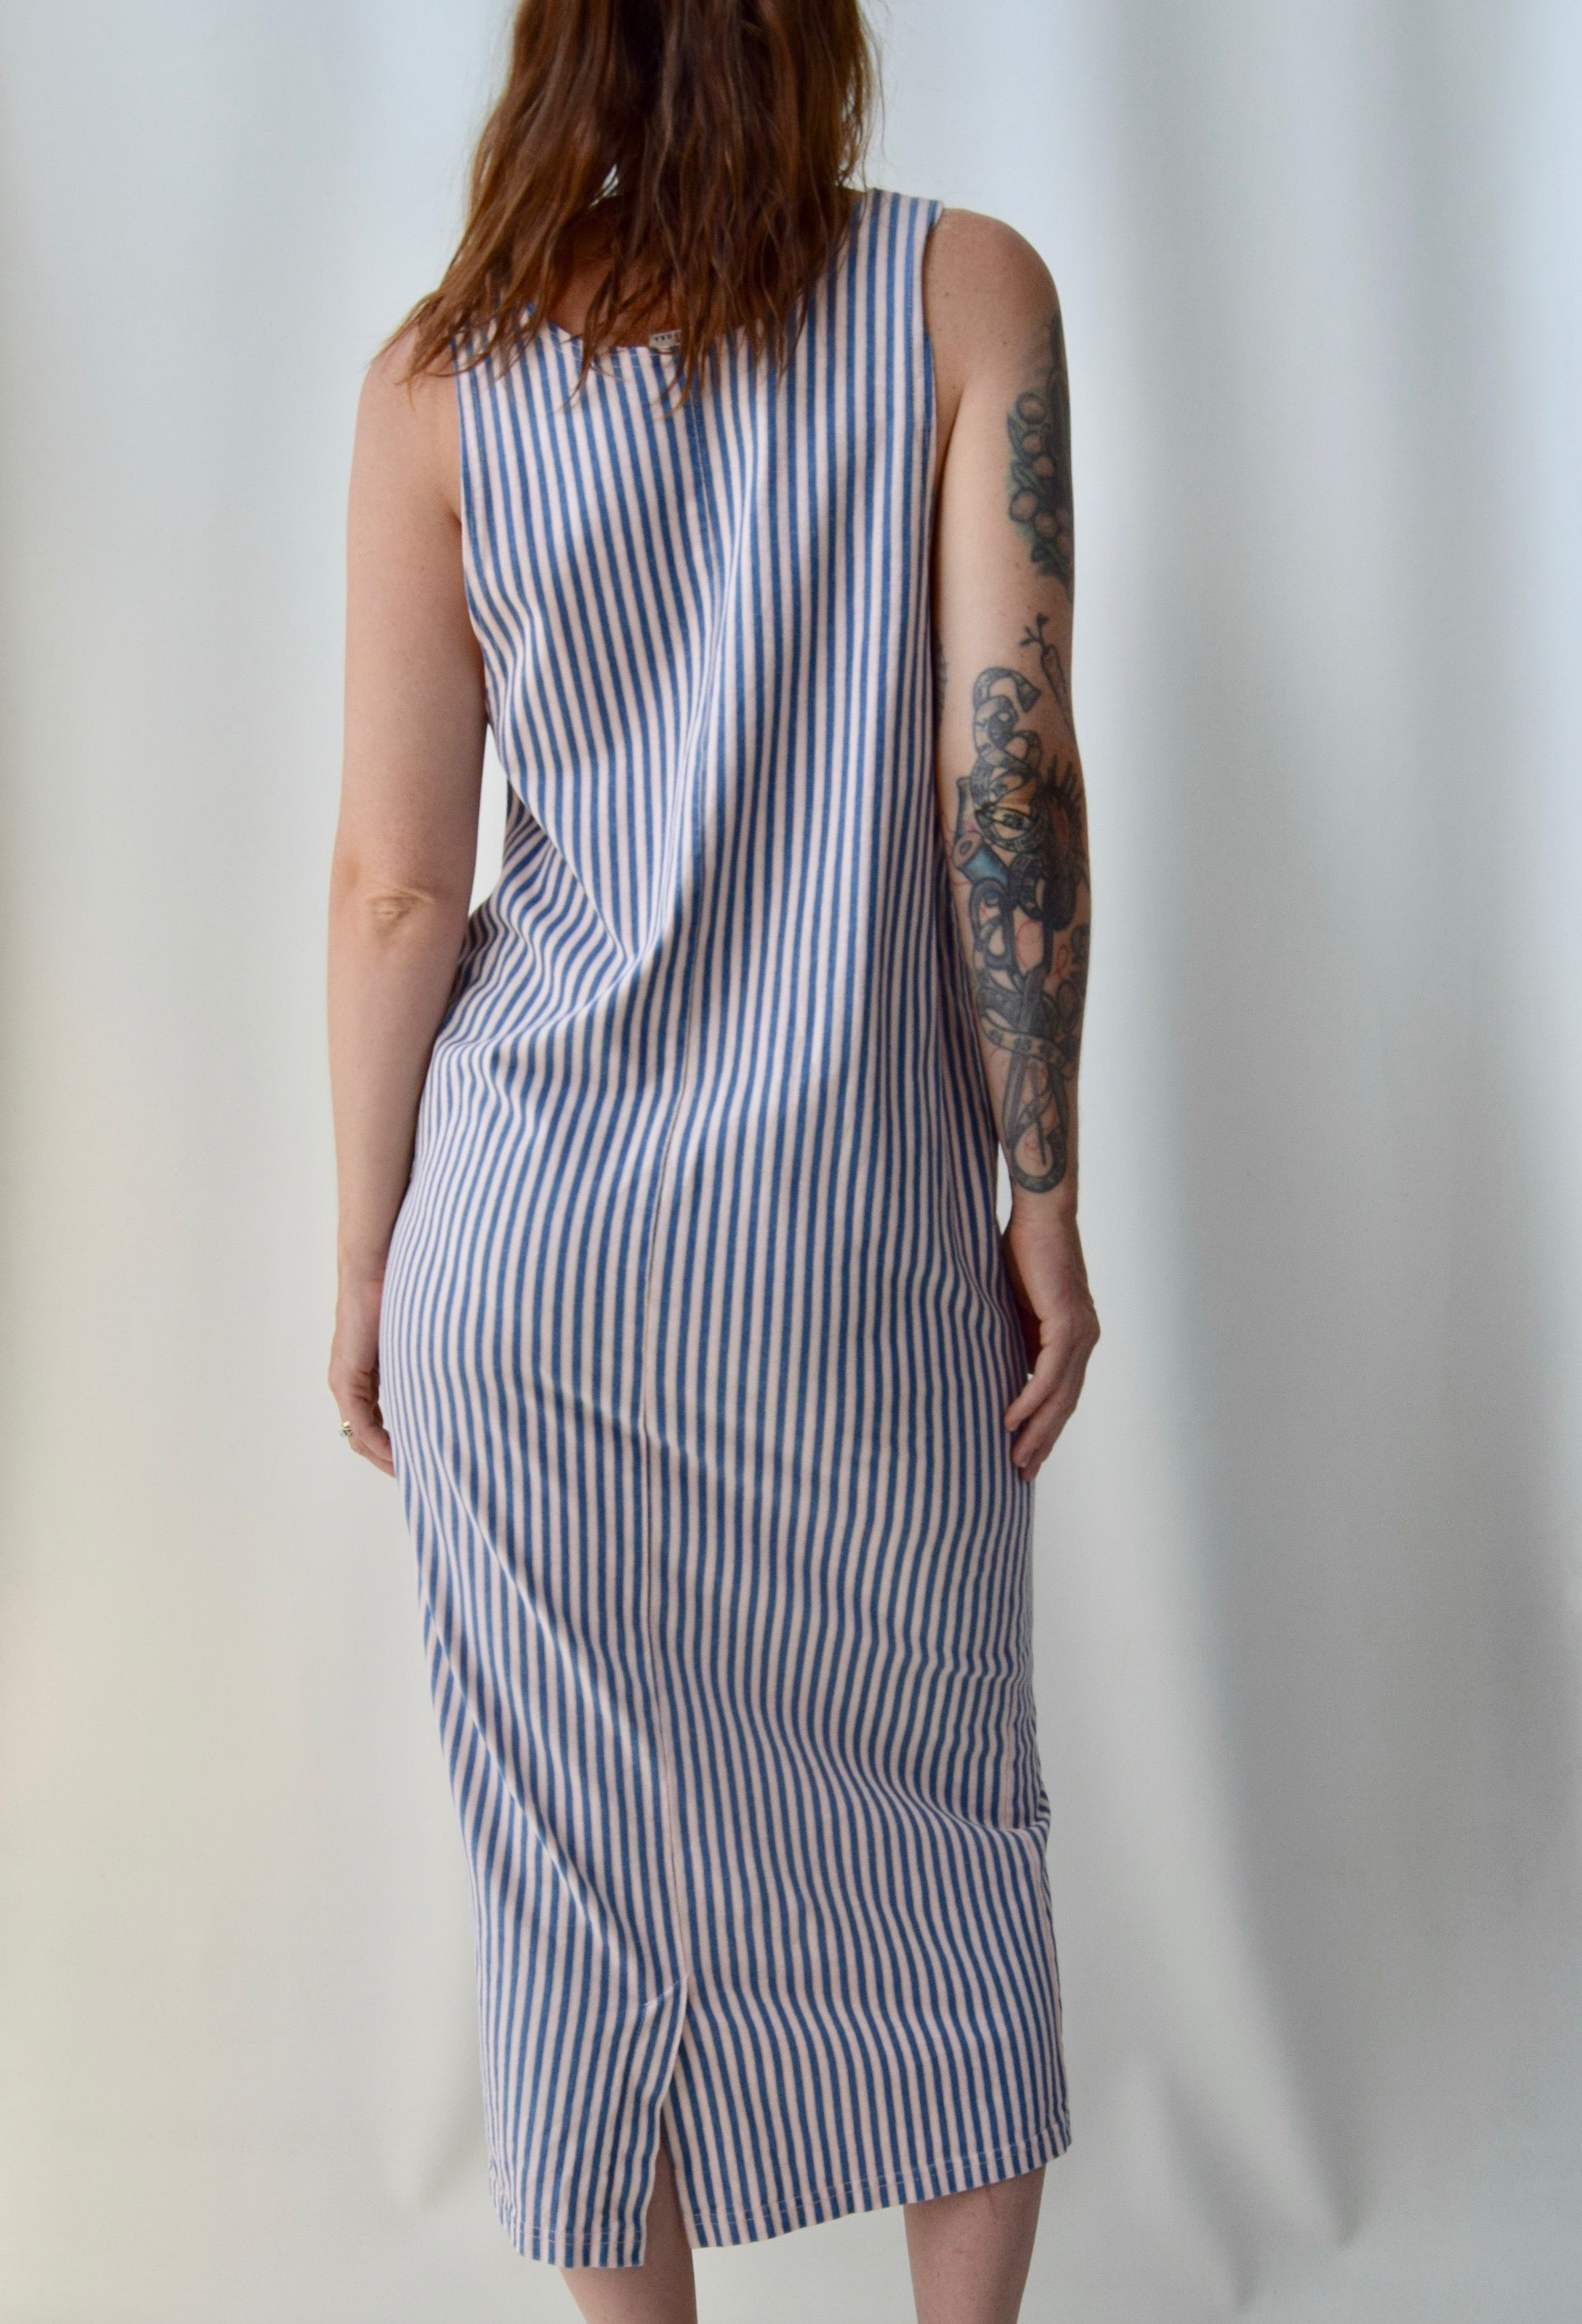 Cotton Candy Stripe Dress